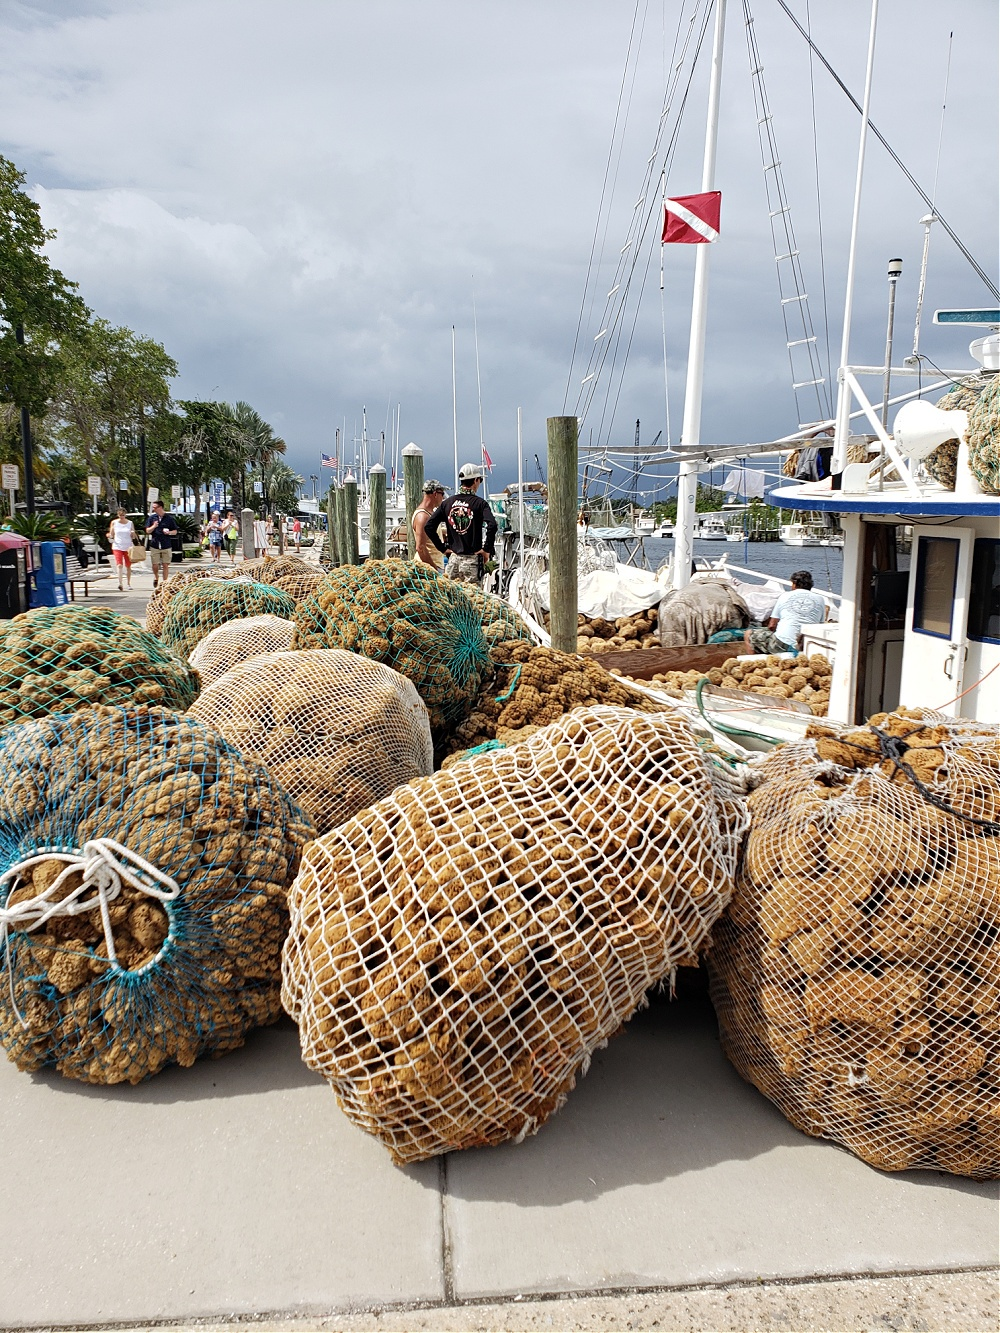 Best Things to Do in Tarpon Springs Florida